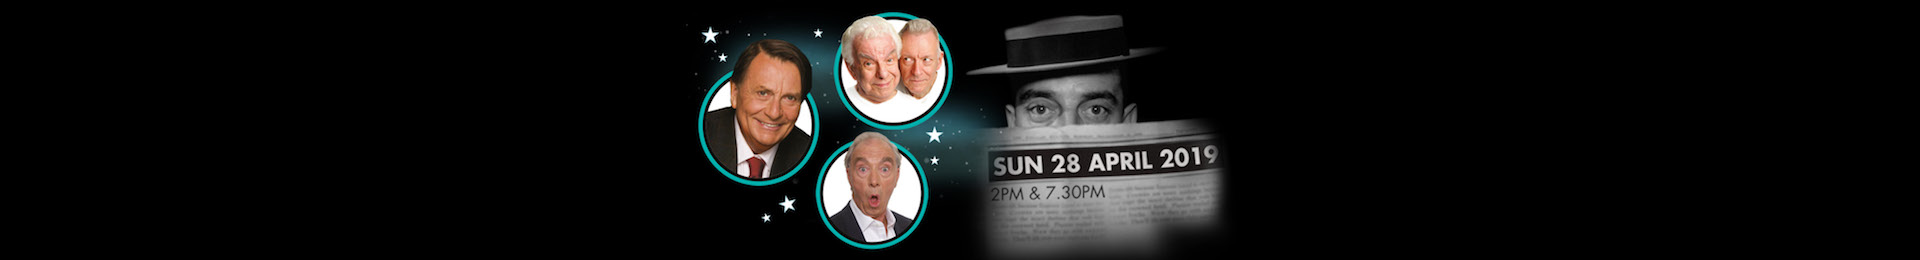 Silent Comedy Spectacular Hosted By Barry Humphries  banner image